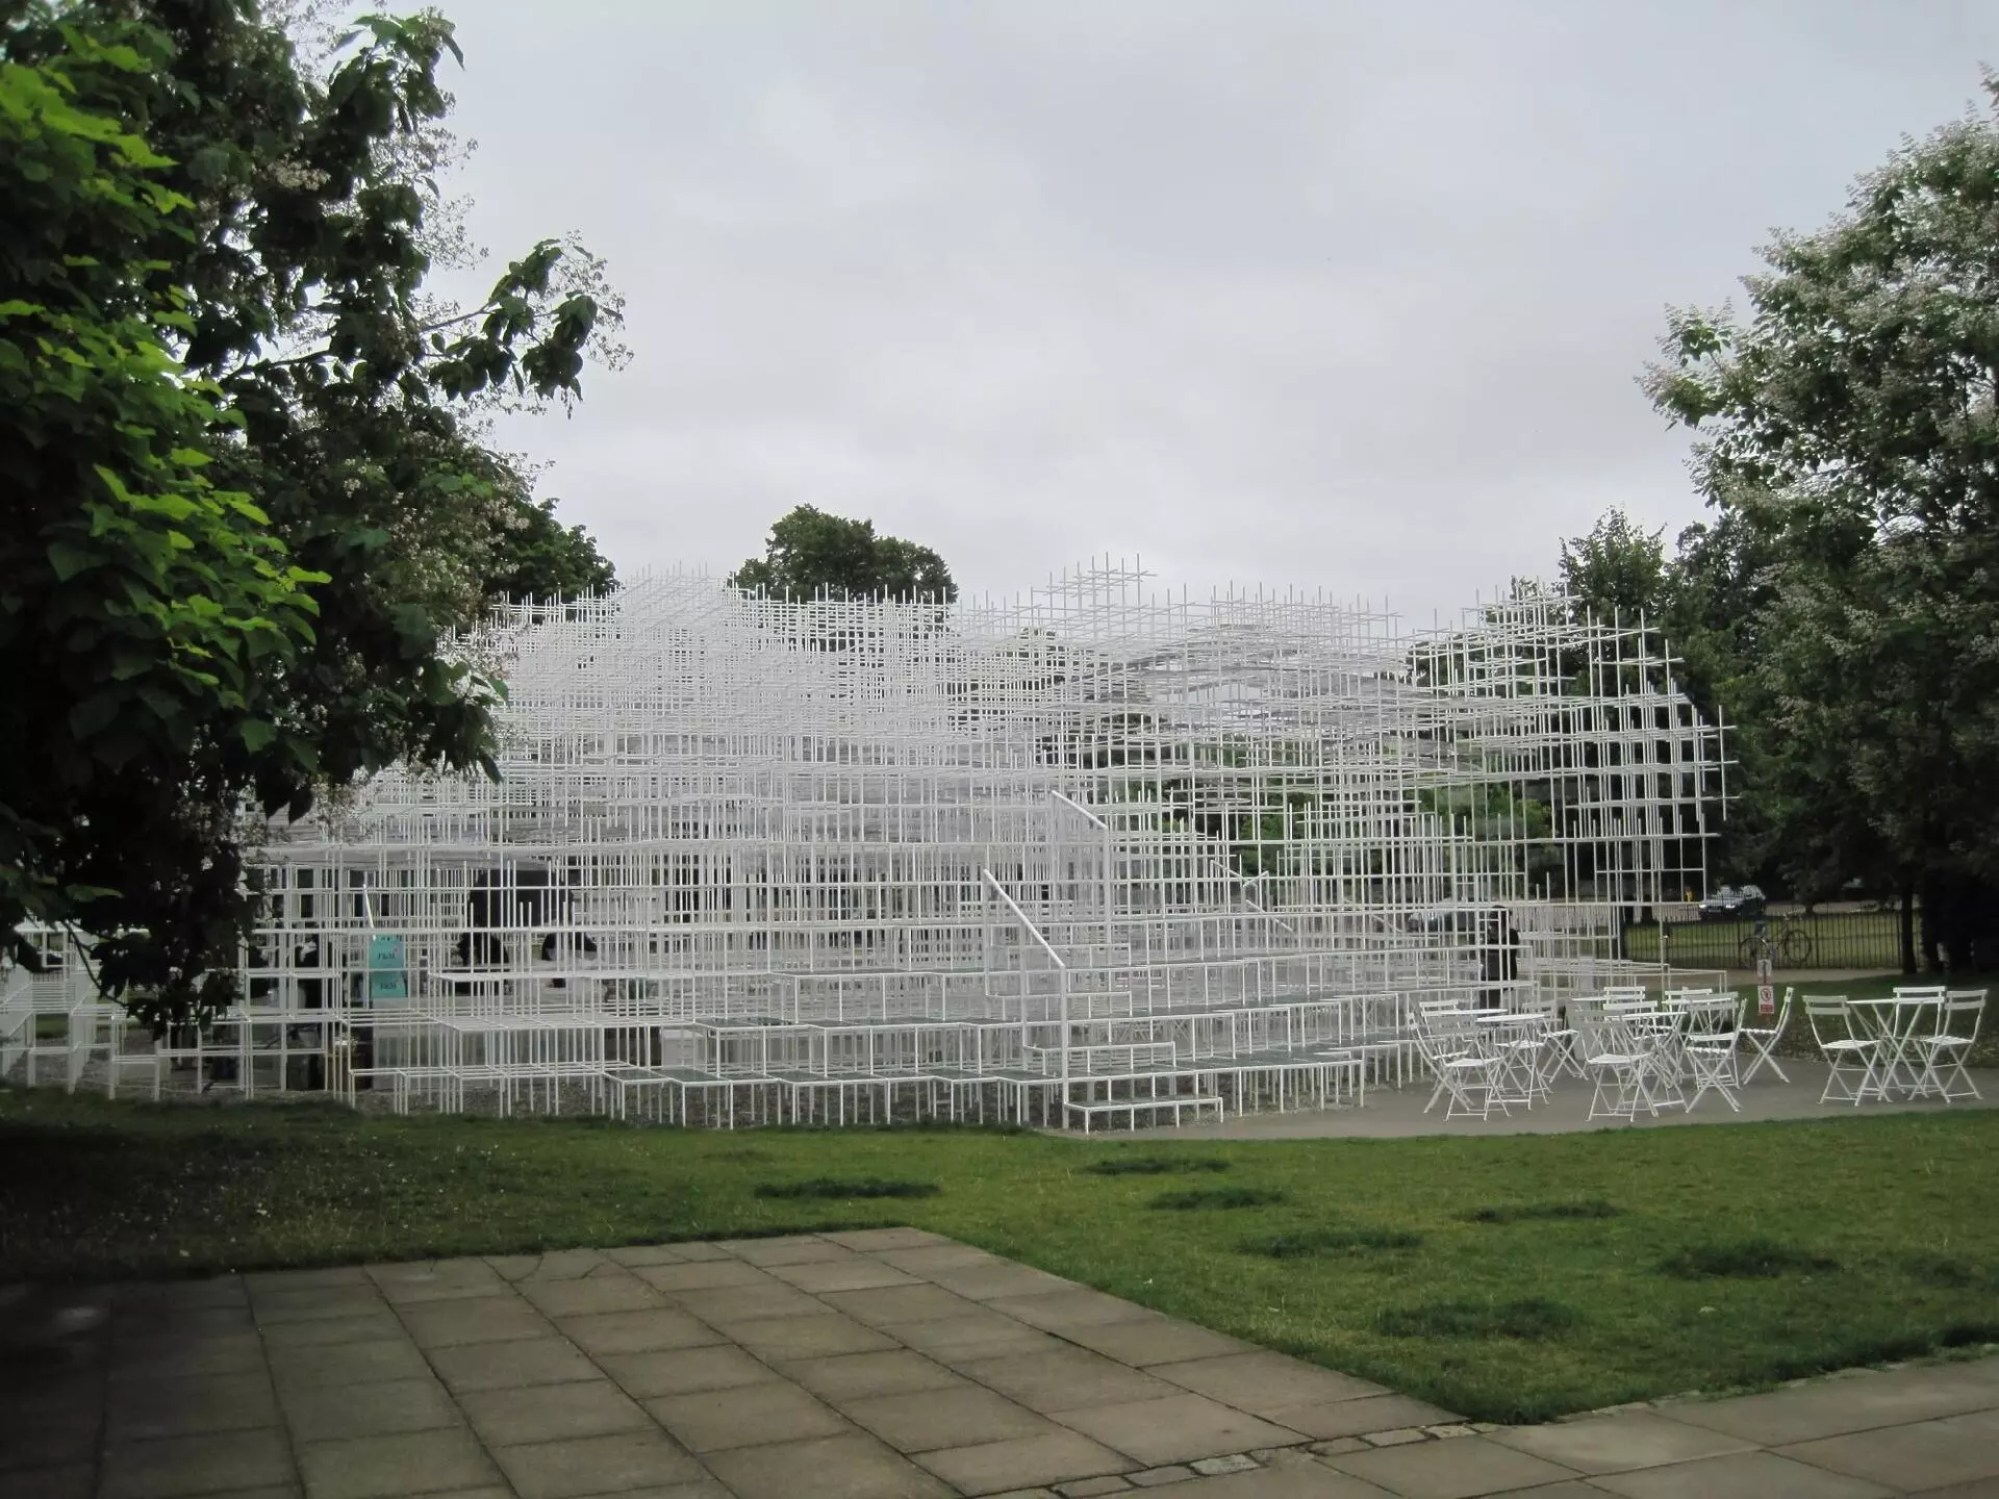 serpentine-gallery-londra